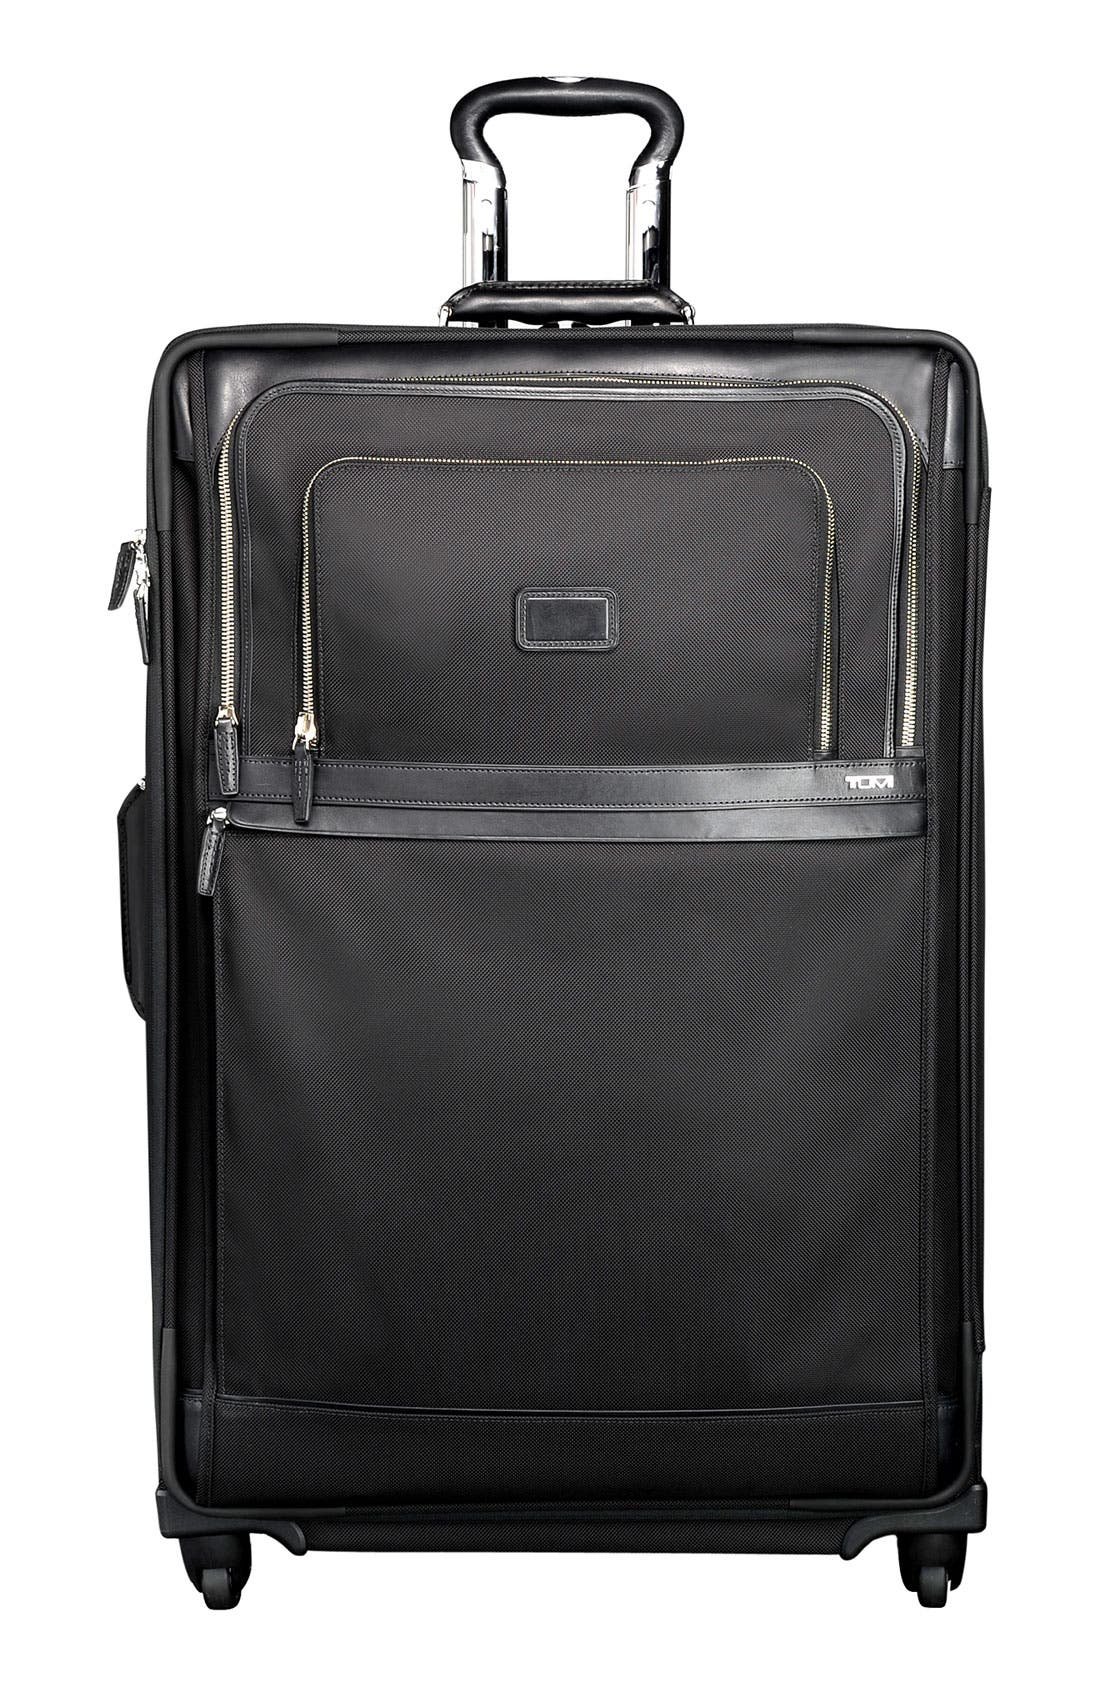 Main Image - Tumi 'Bedford - Paddock' 4-Wheeled Worldwide Trip Bag